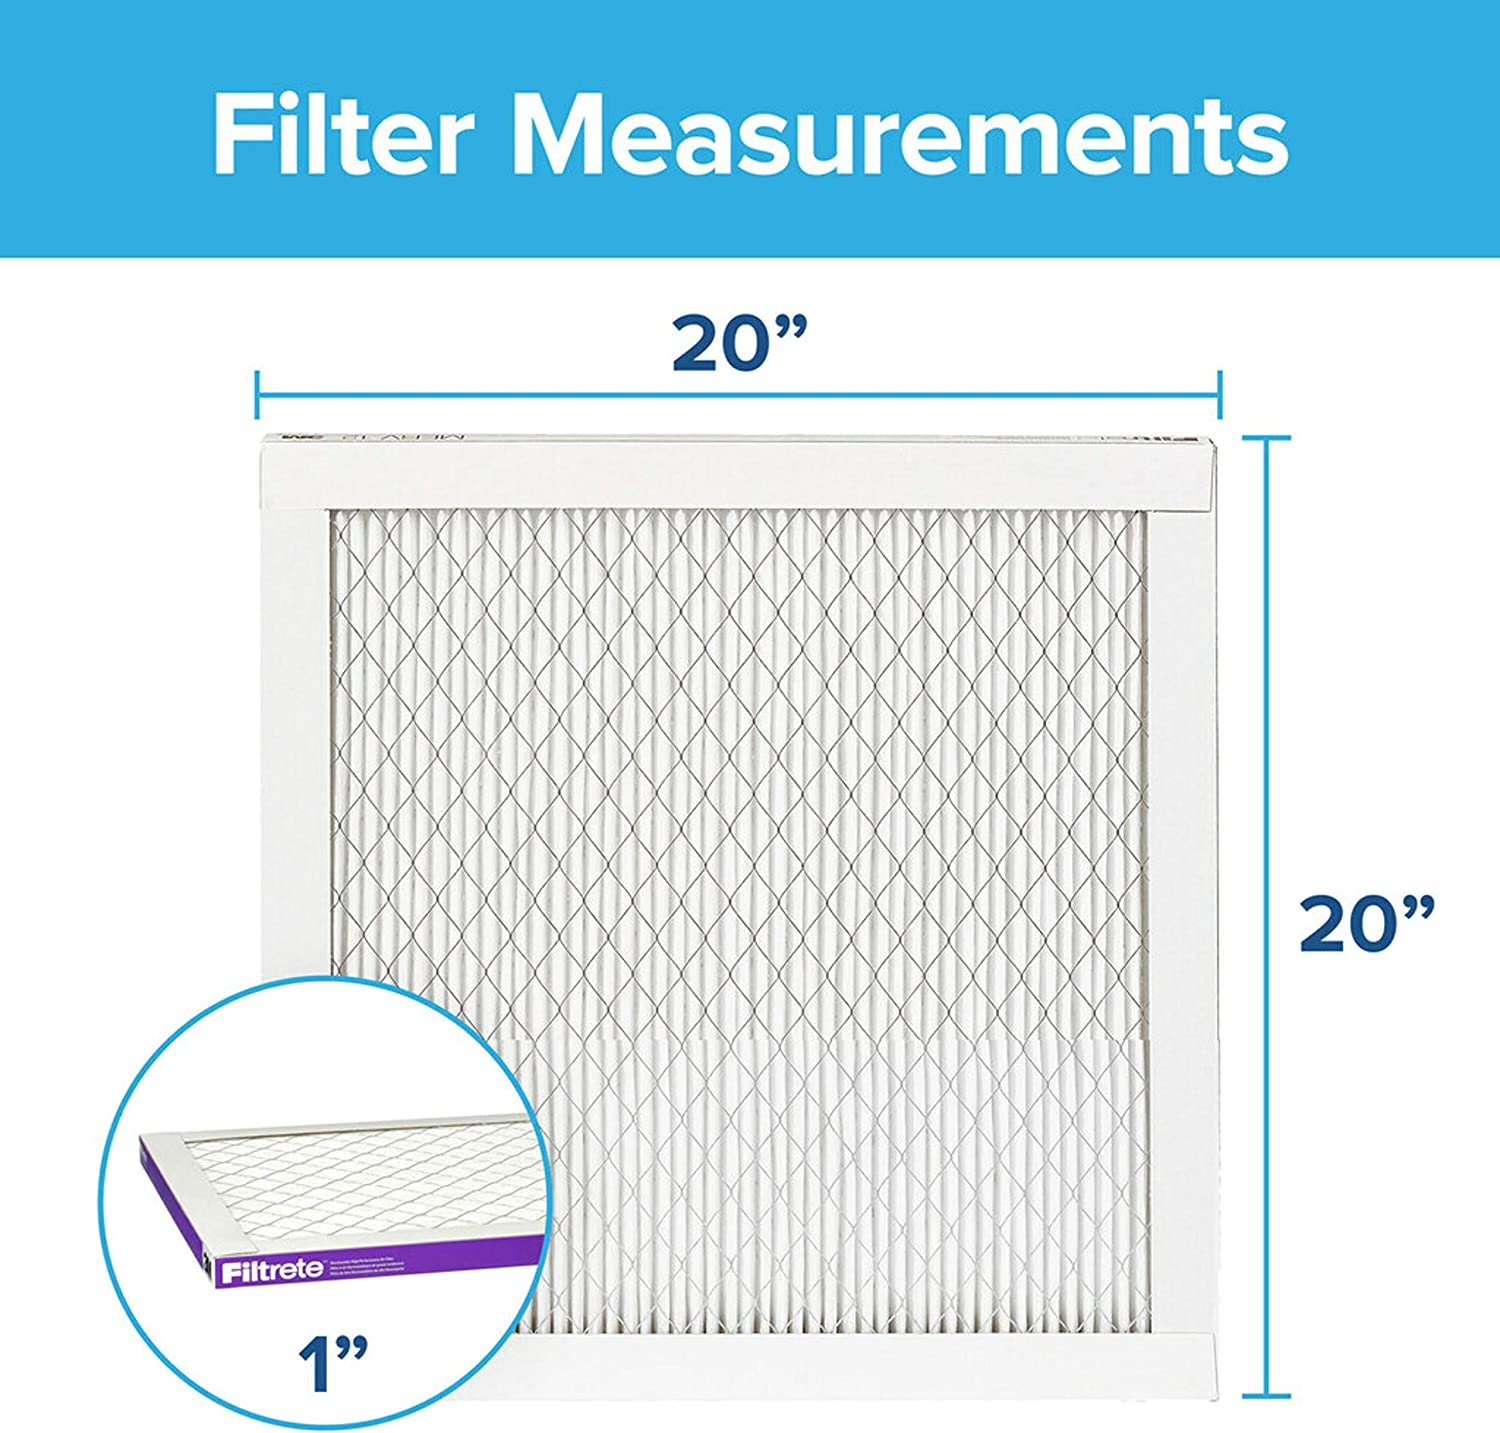 Filtrete 14x20x1 AC Furnace Air Filter MPR 1500 and Airthings ...